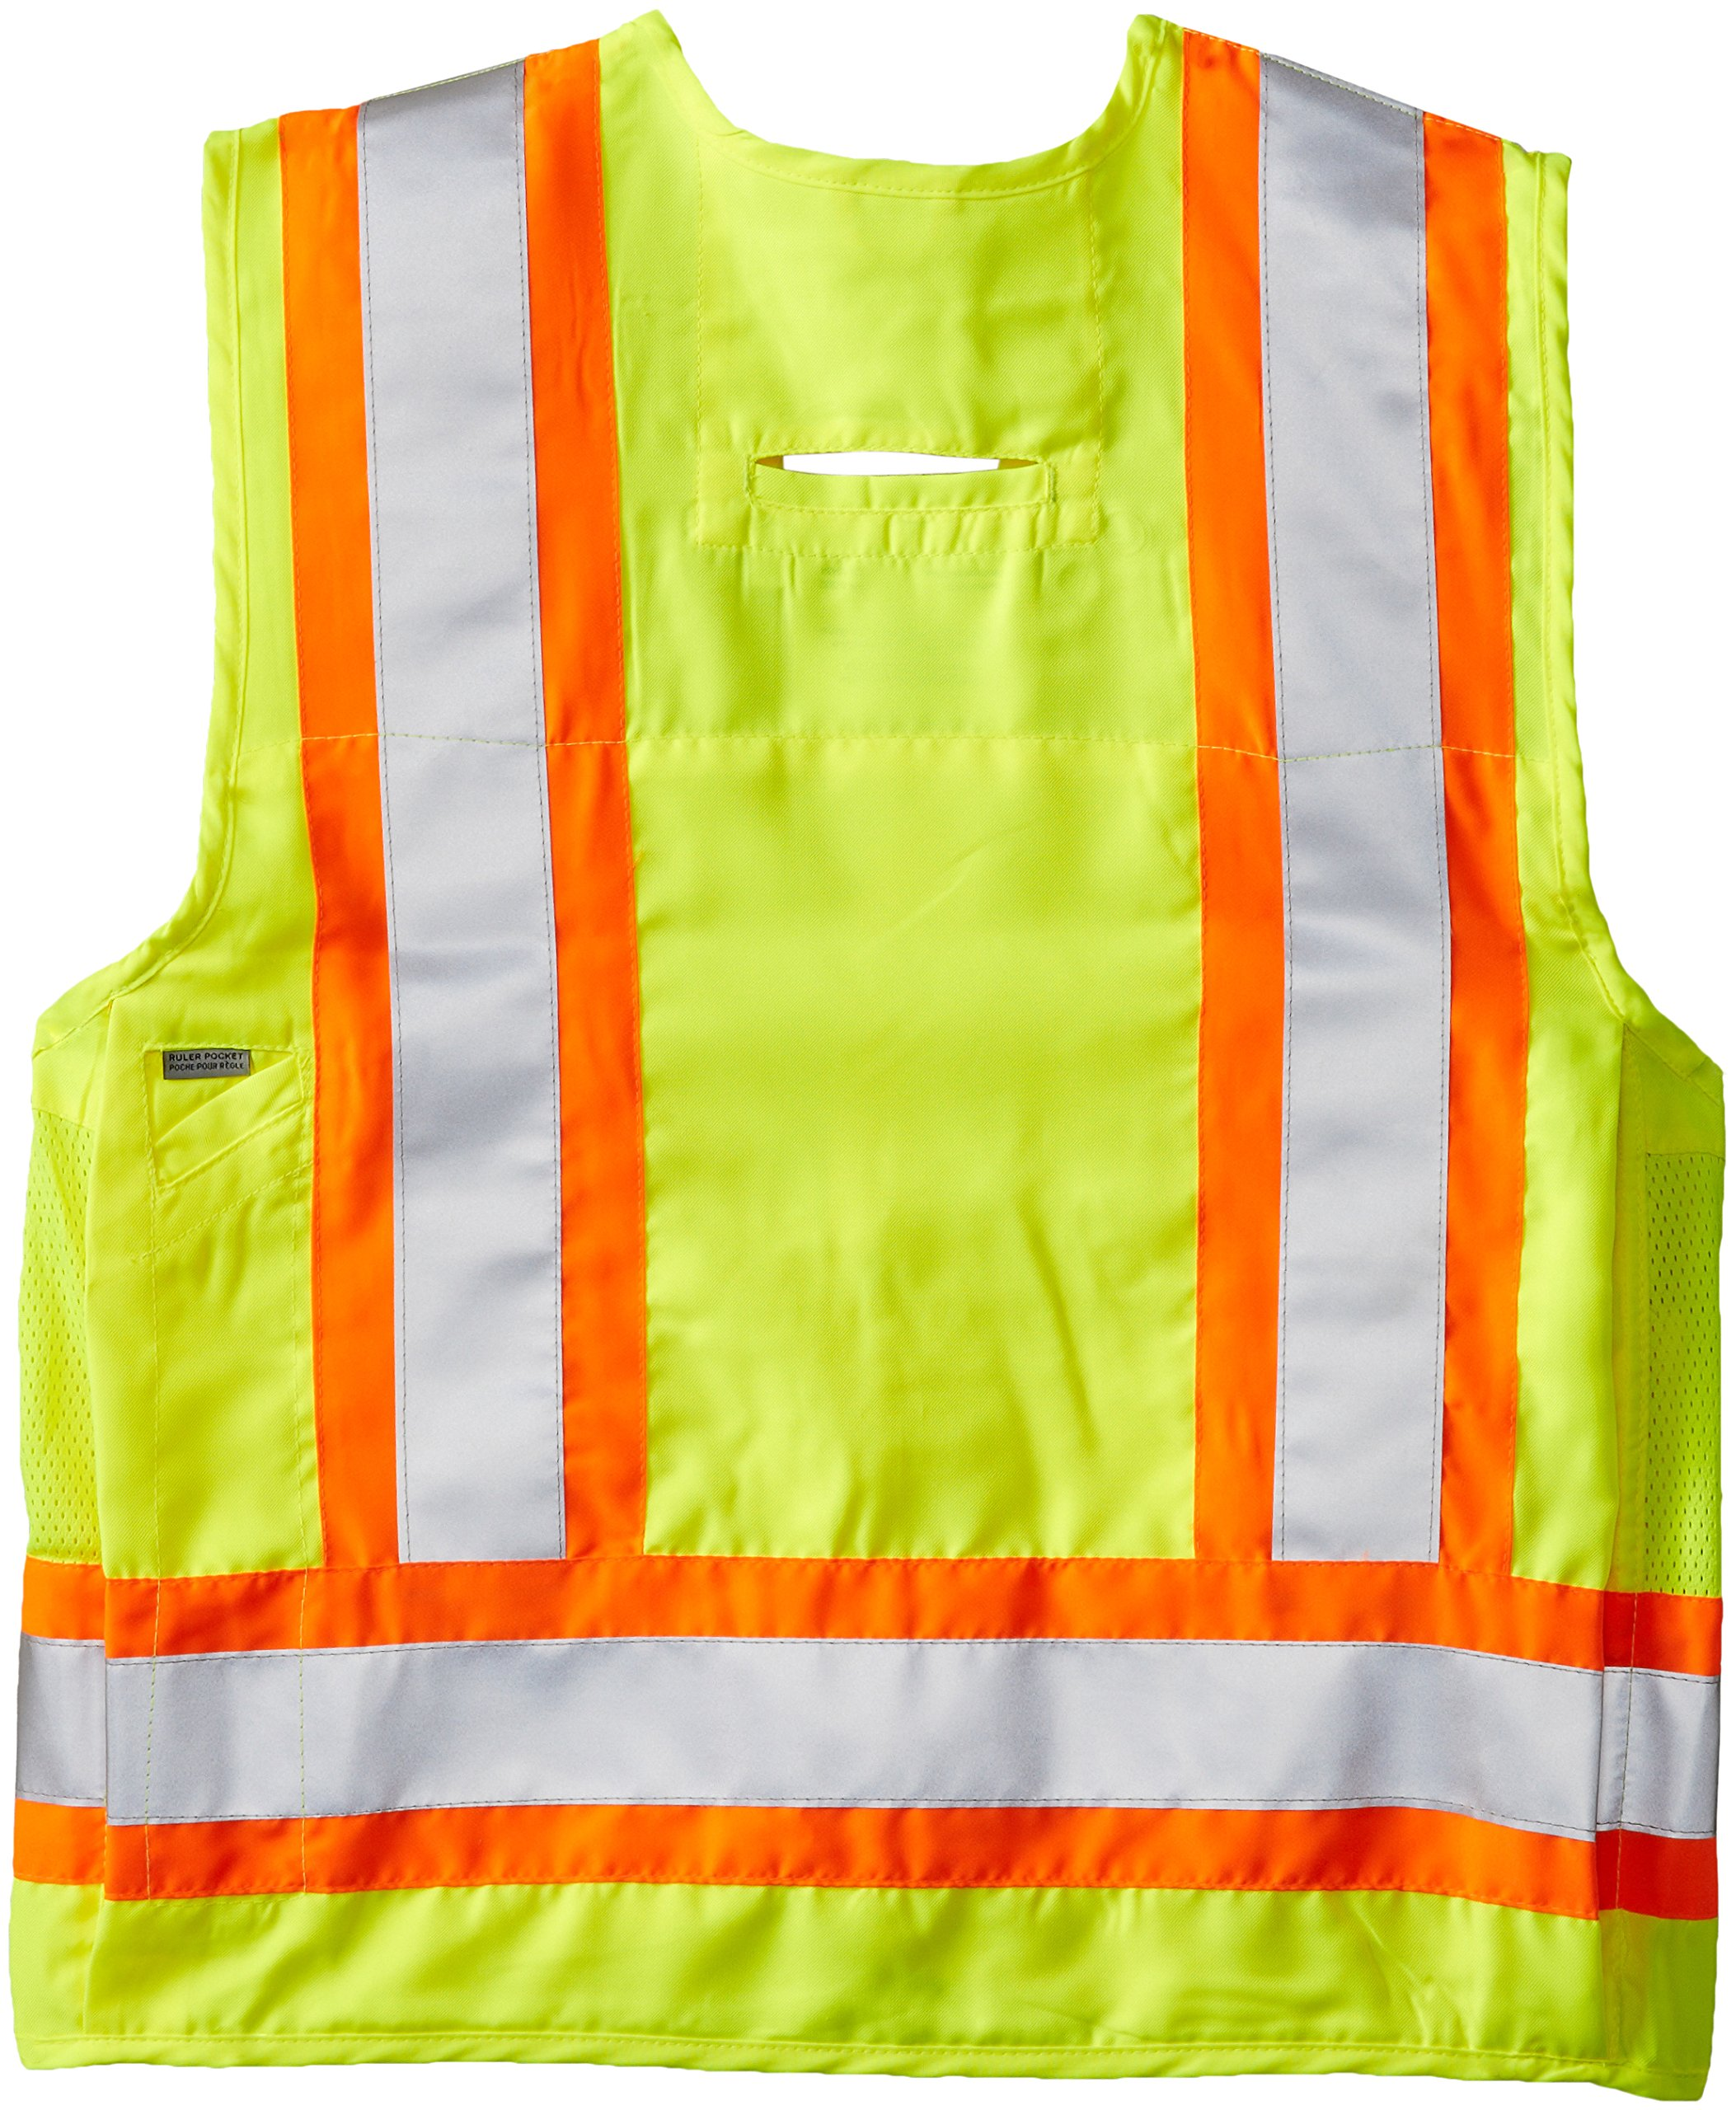 Viking Surveyor Hi-Vis Safety Vest, Green, XX-Large by Viking (Image #2)